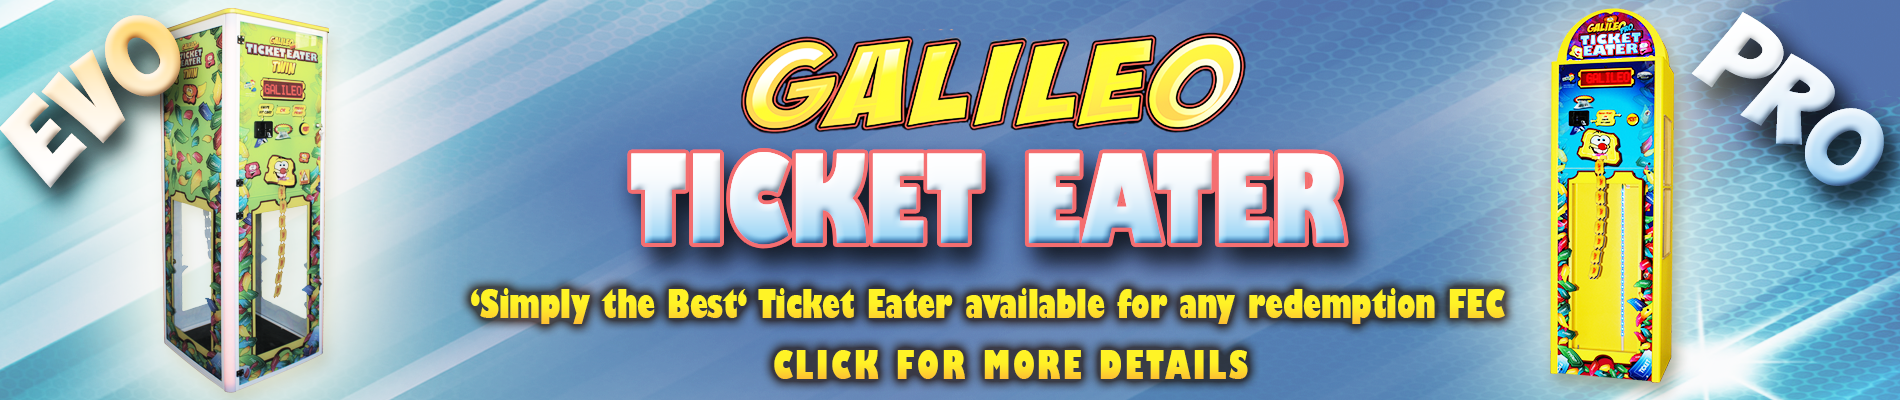 Galileo Ticket Eater Systems